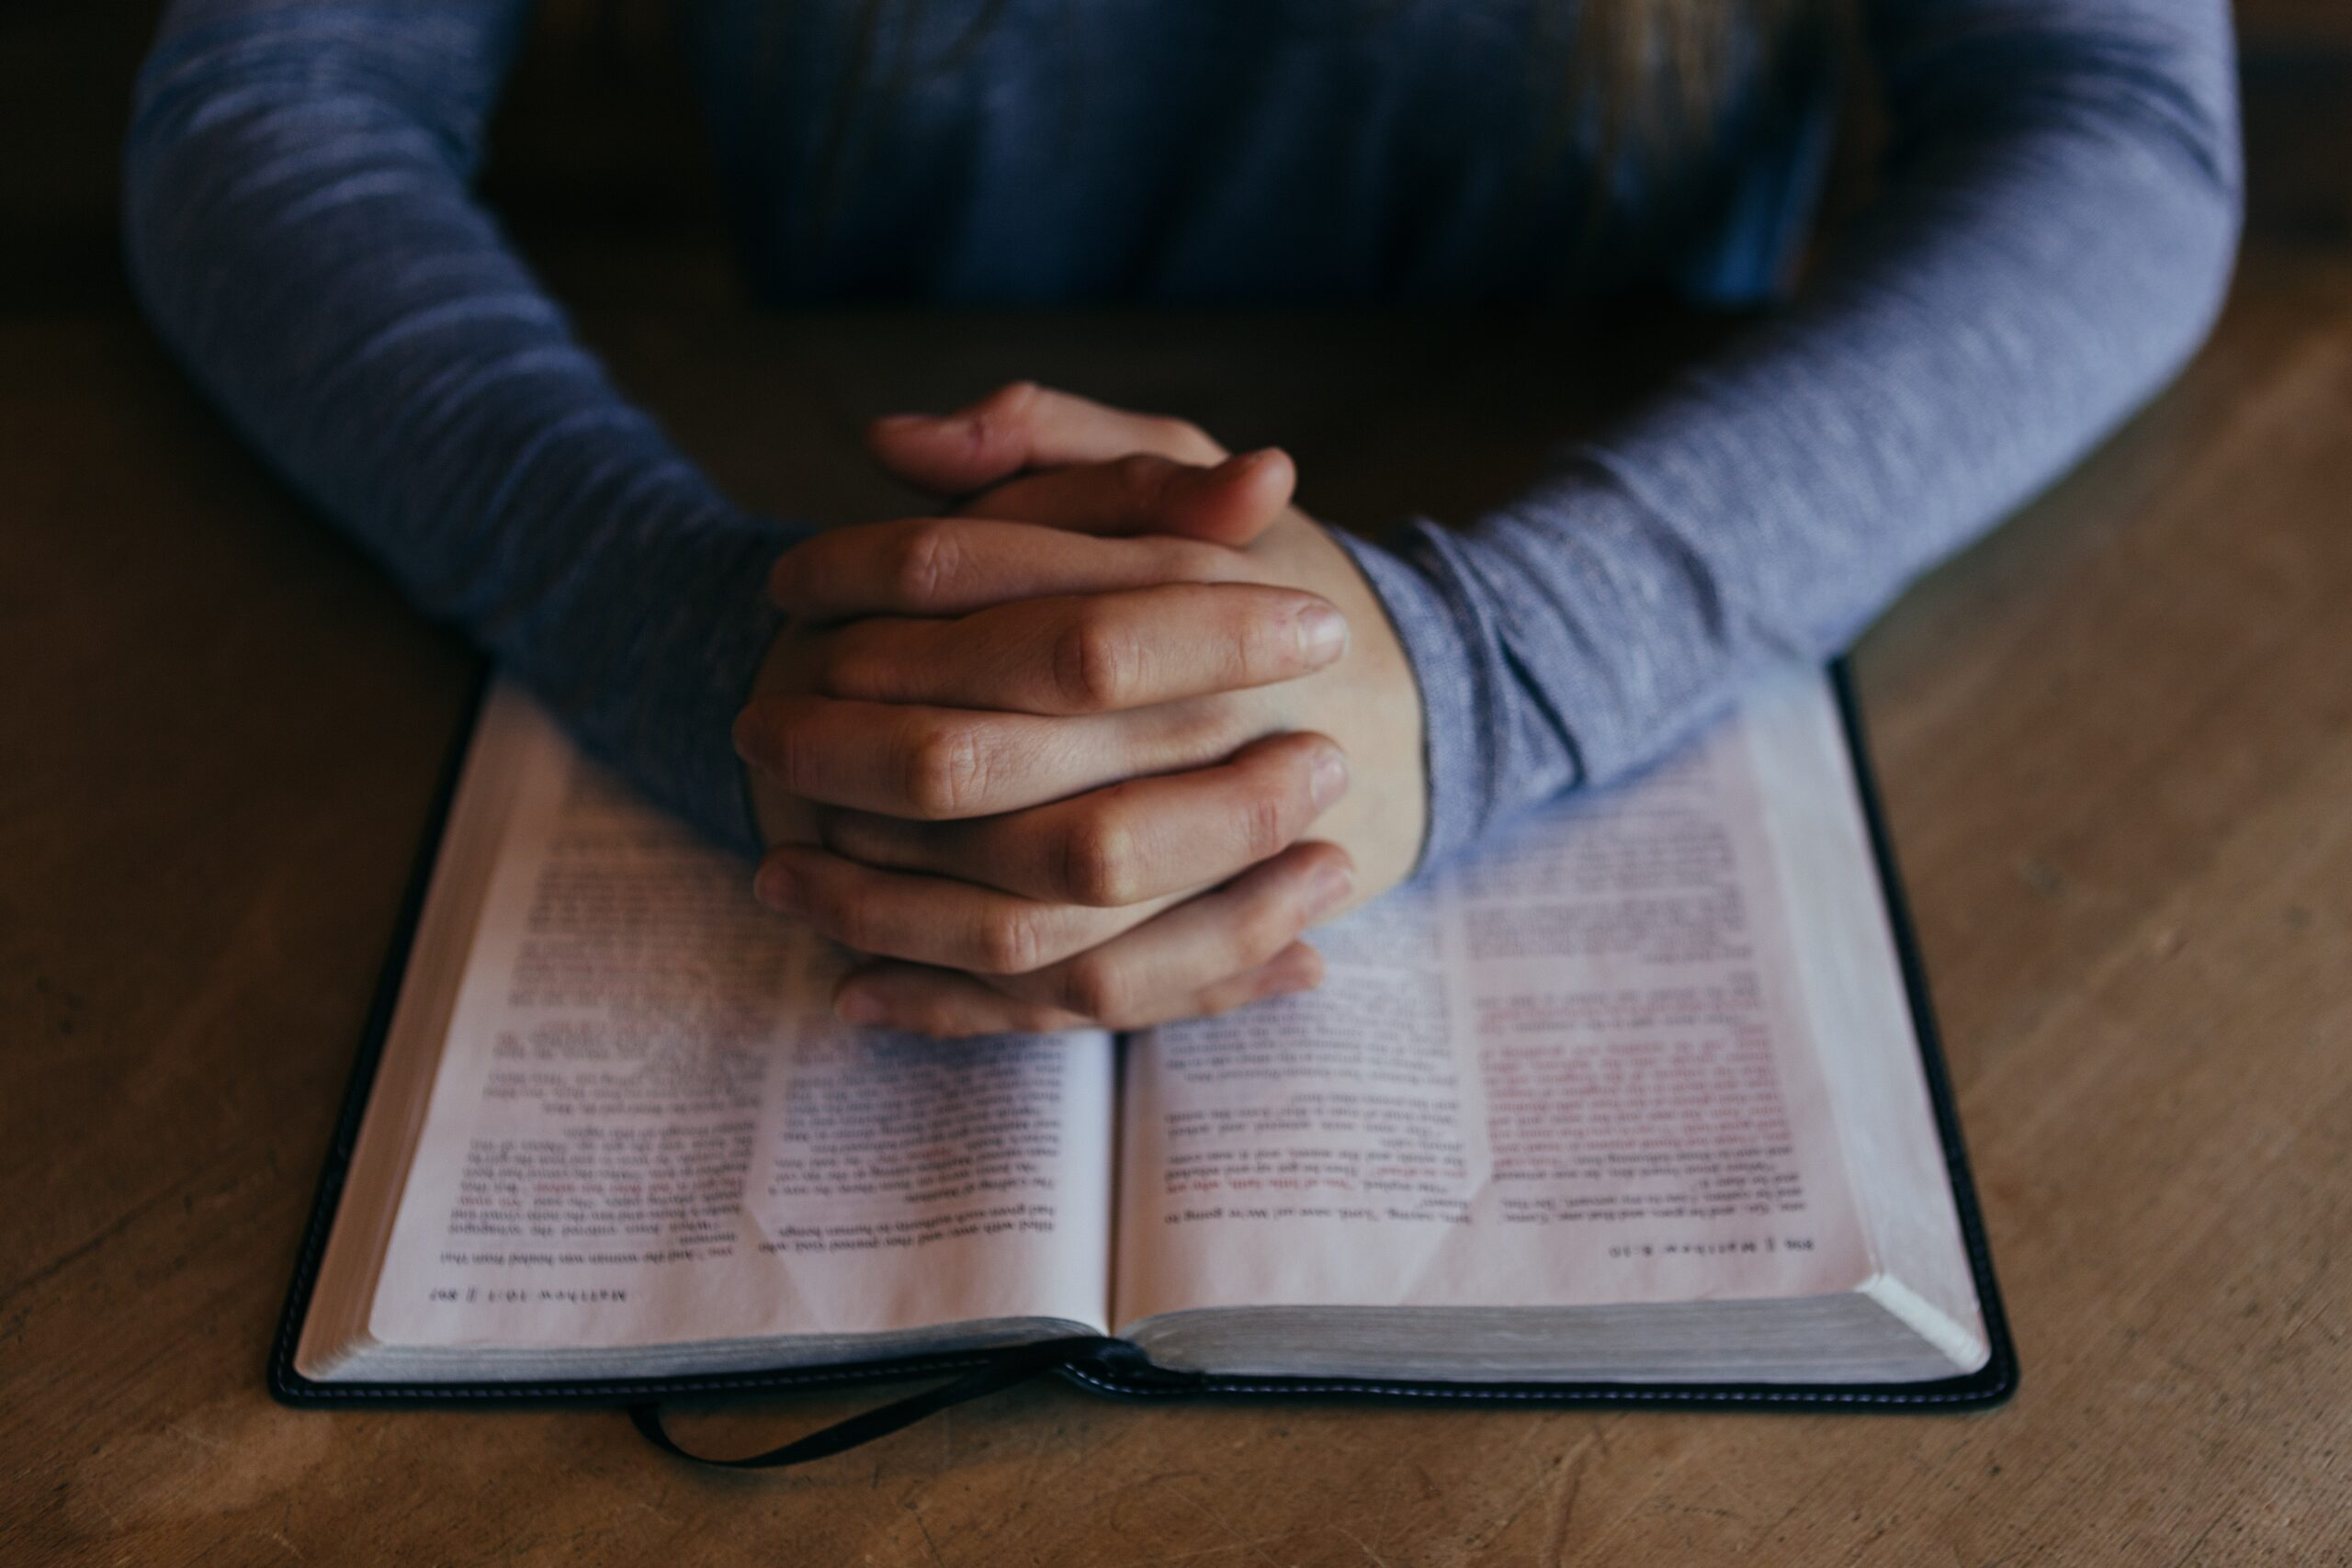 Folded hands on bible taking for granted